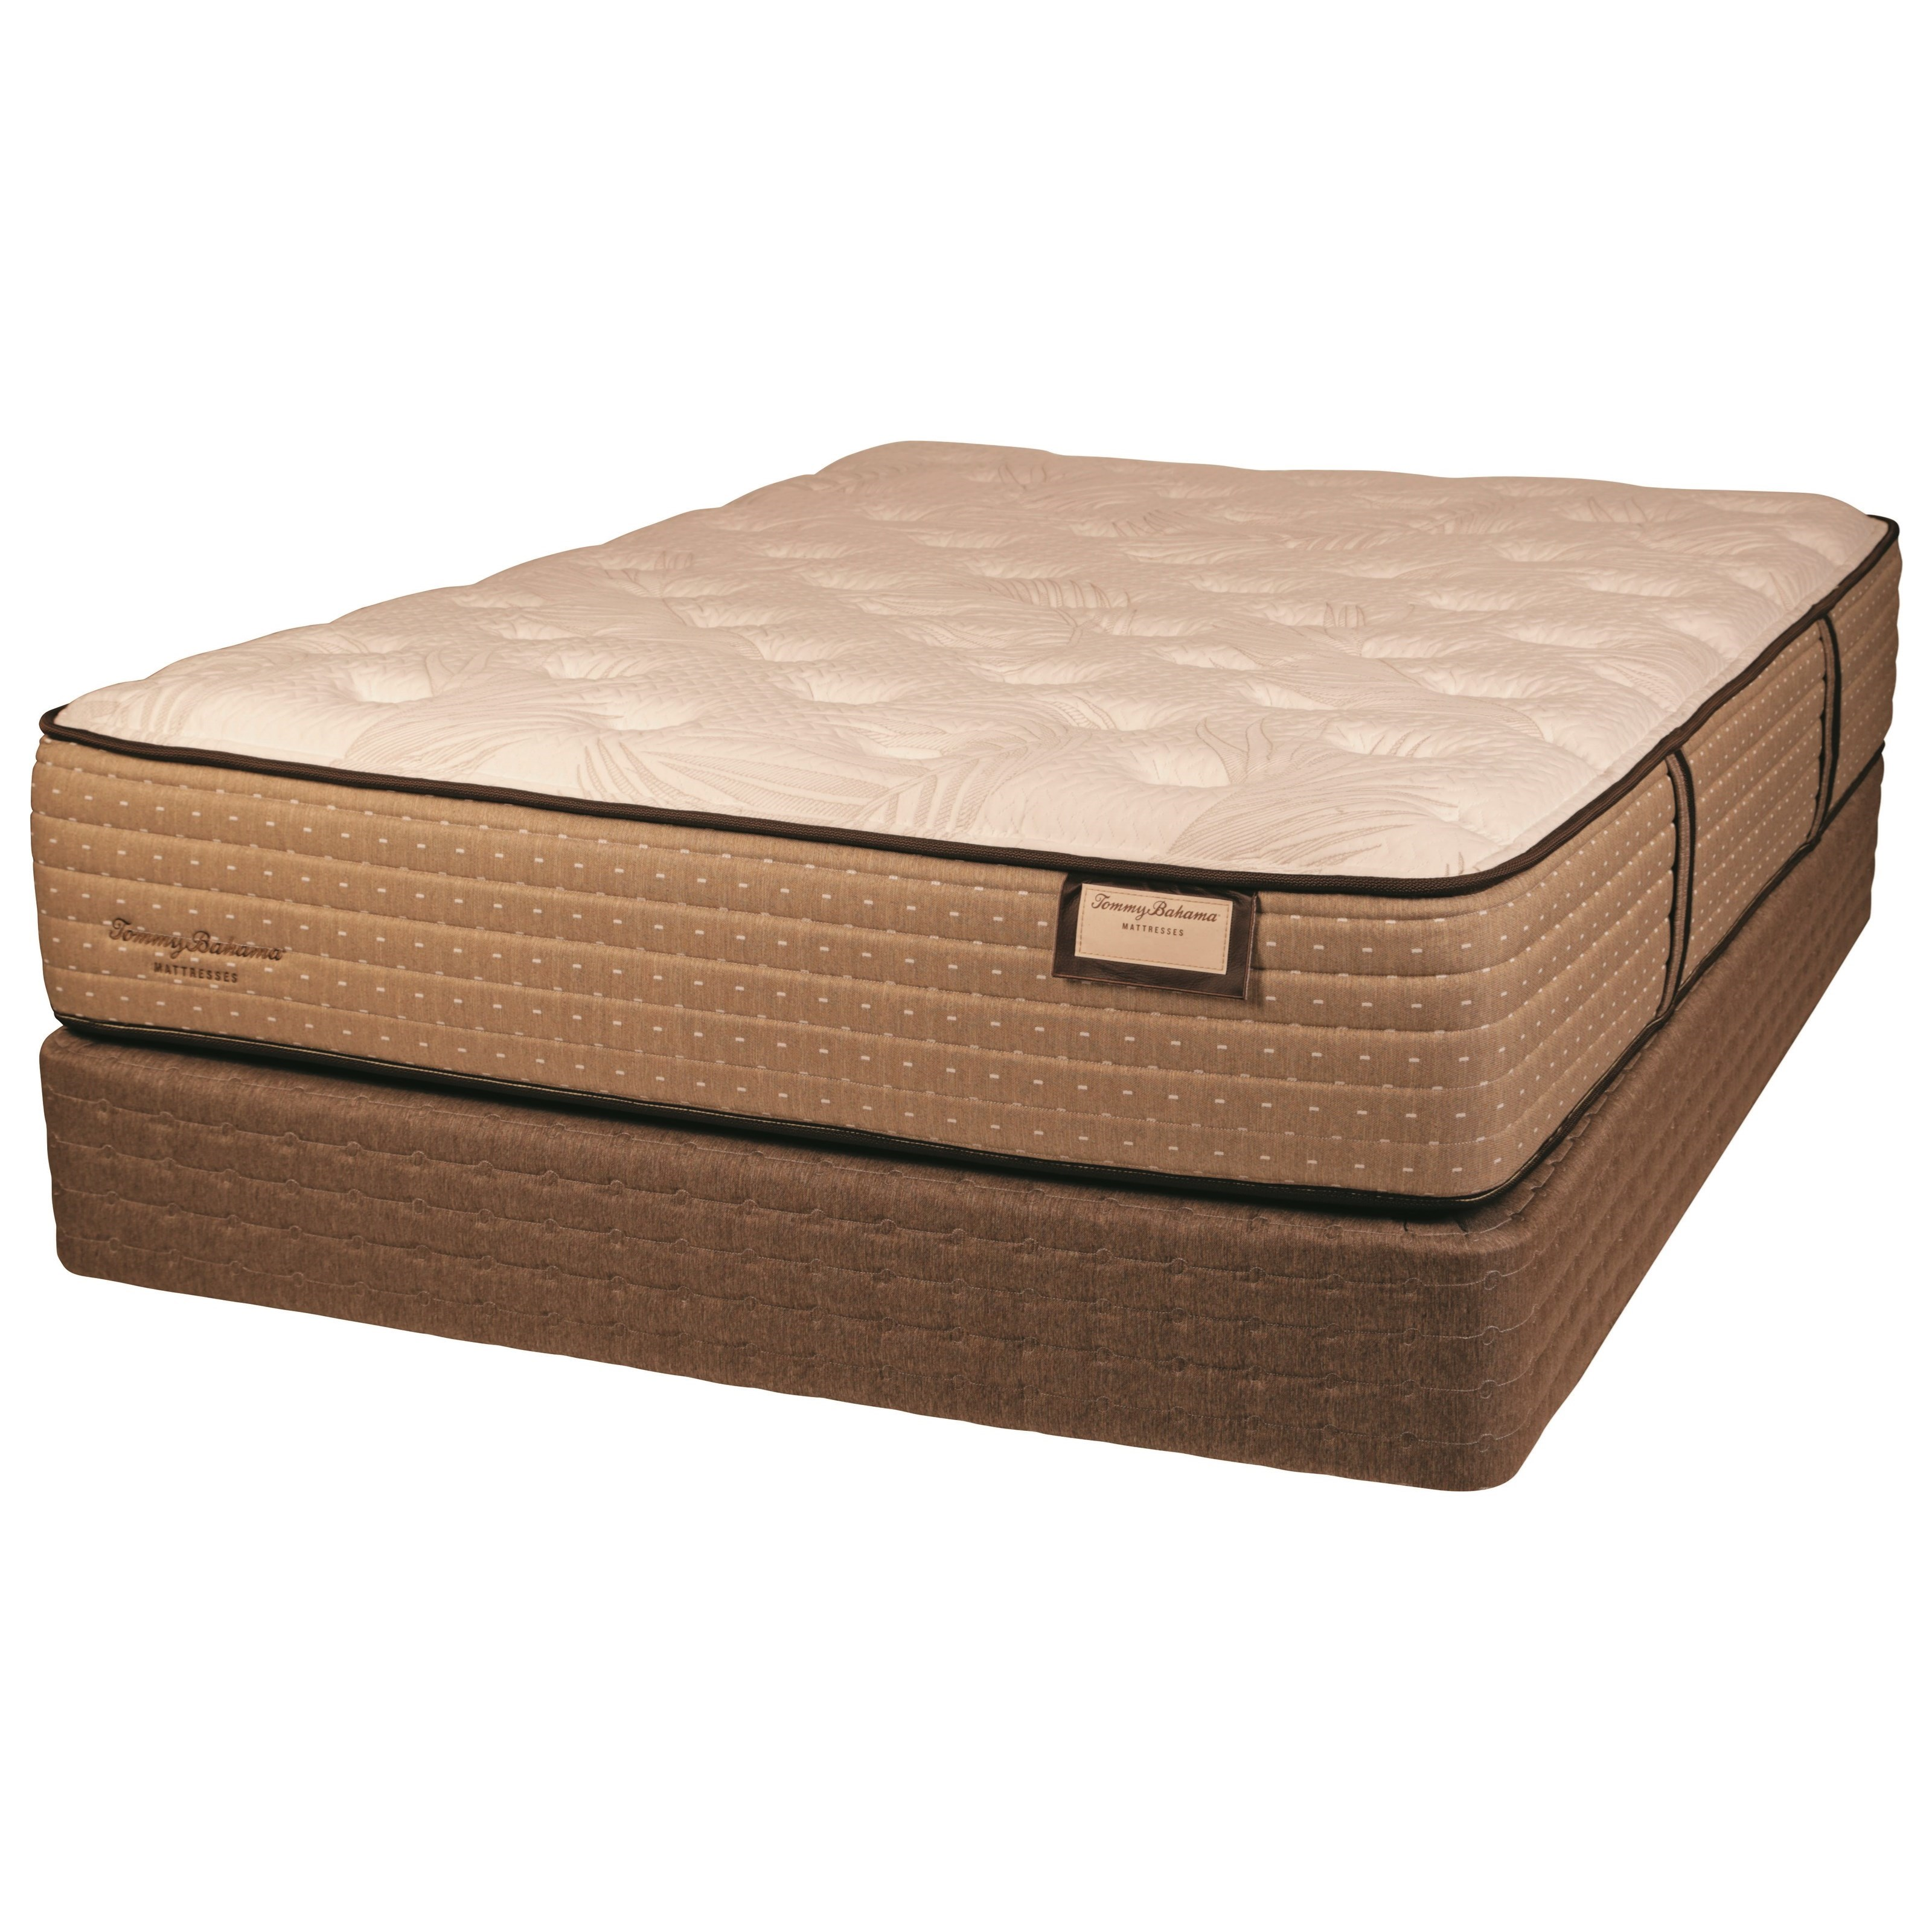 Tommy Bahama Shake the Sand Firm 6034 Queen Firm Luxury Low Profile Set by Tommy Bahama Mattress at Baer's Furniture